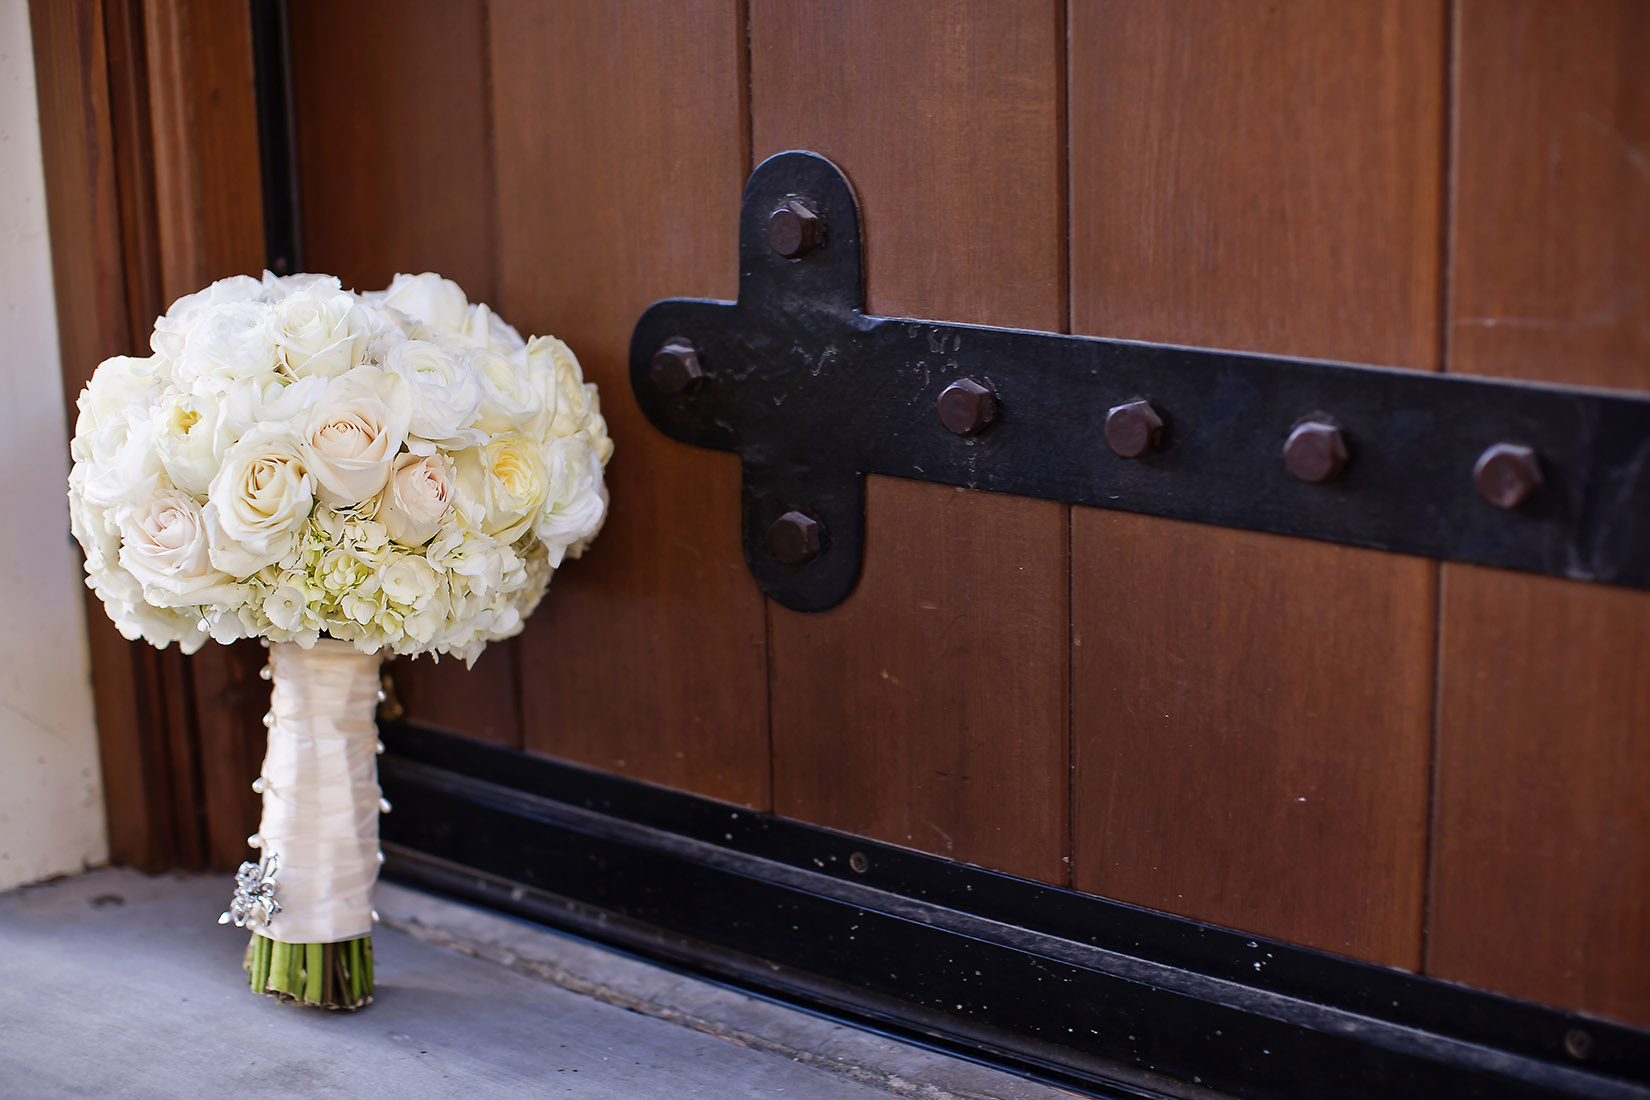 An image of a white rose and hydrangea floral bouquet from the Lindsay & Shawn Wedding